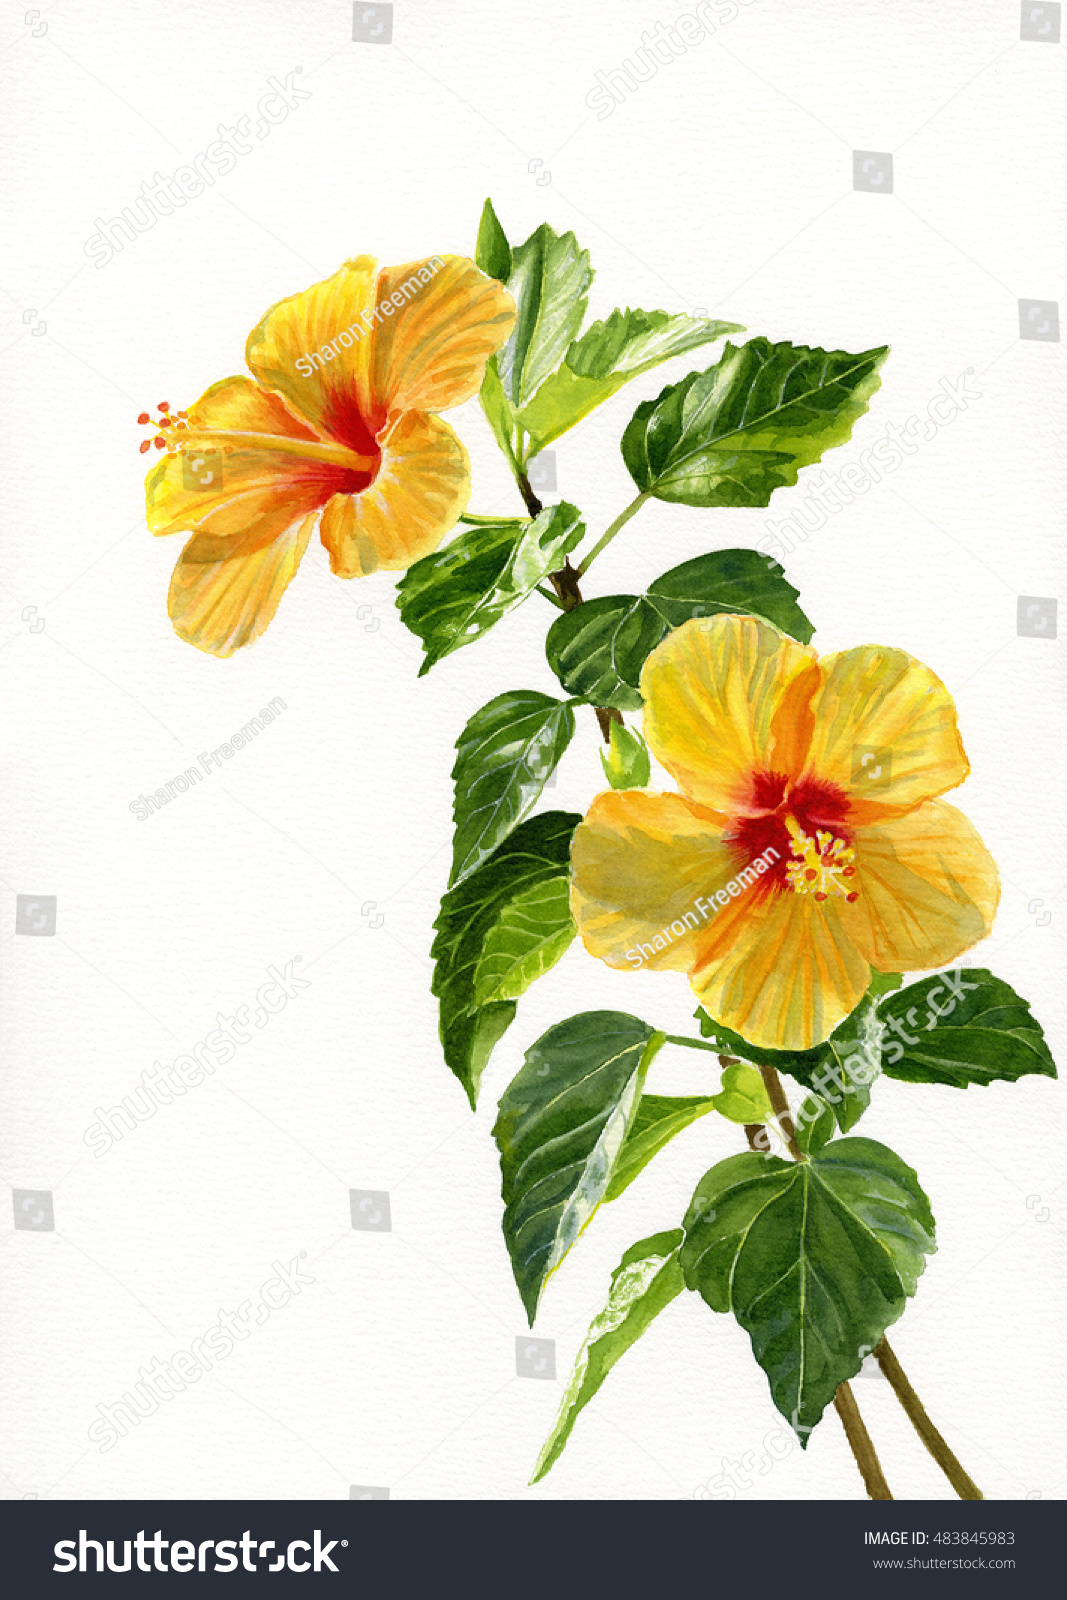 Royalty Free Stock Illustration Of Two Yellow Hibiscus Flowers